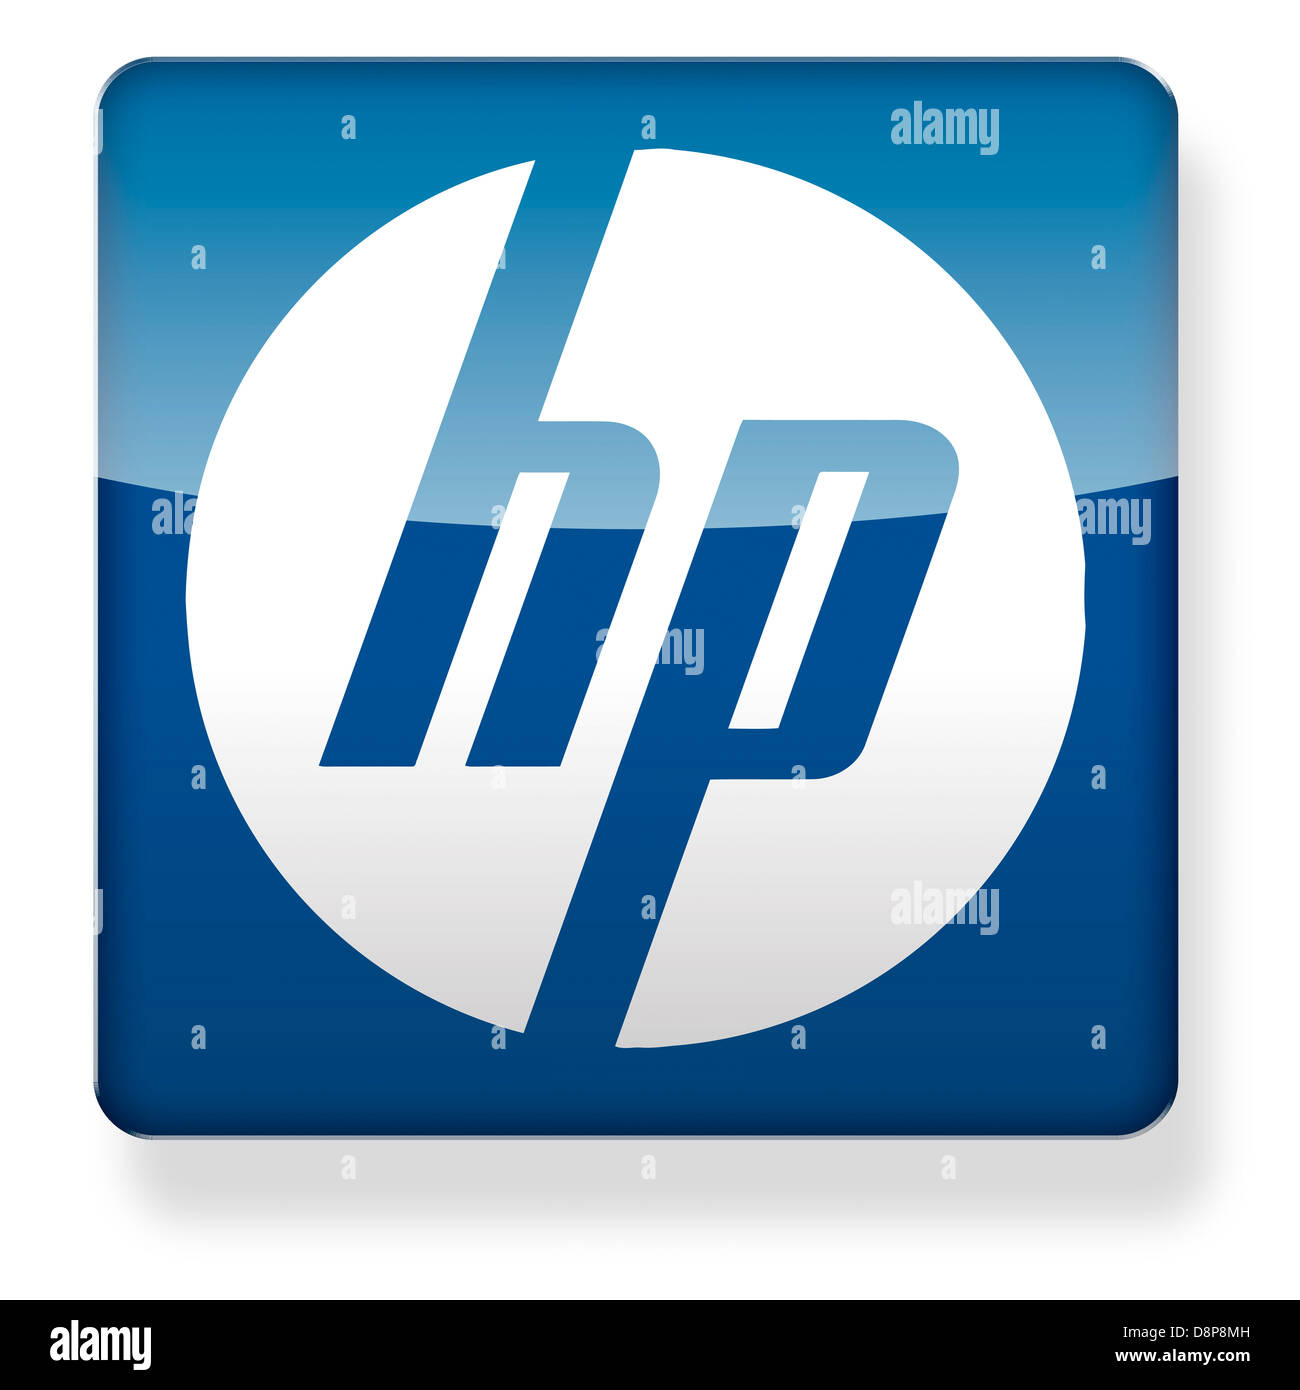 Hewlett Packard Logo As An App Icon Clipping Path Included Stock